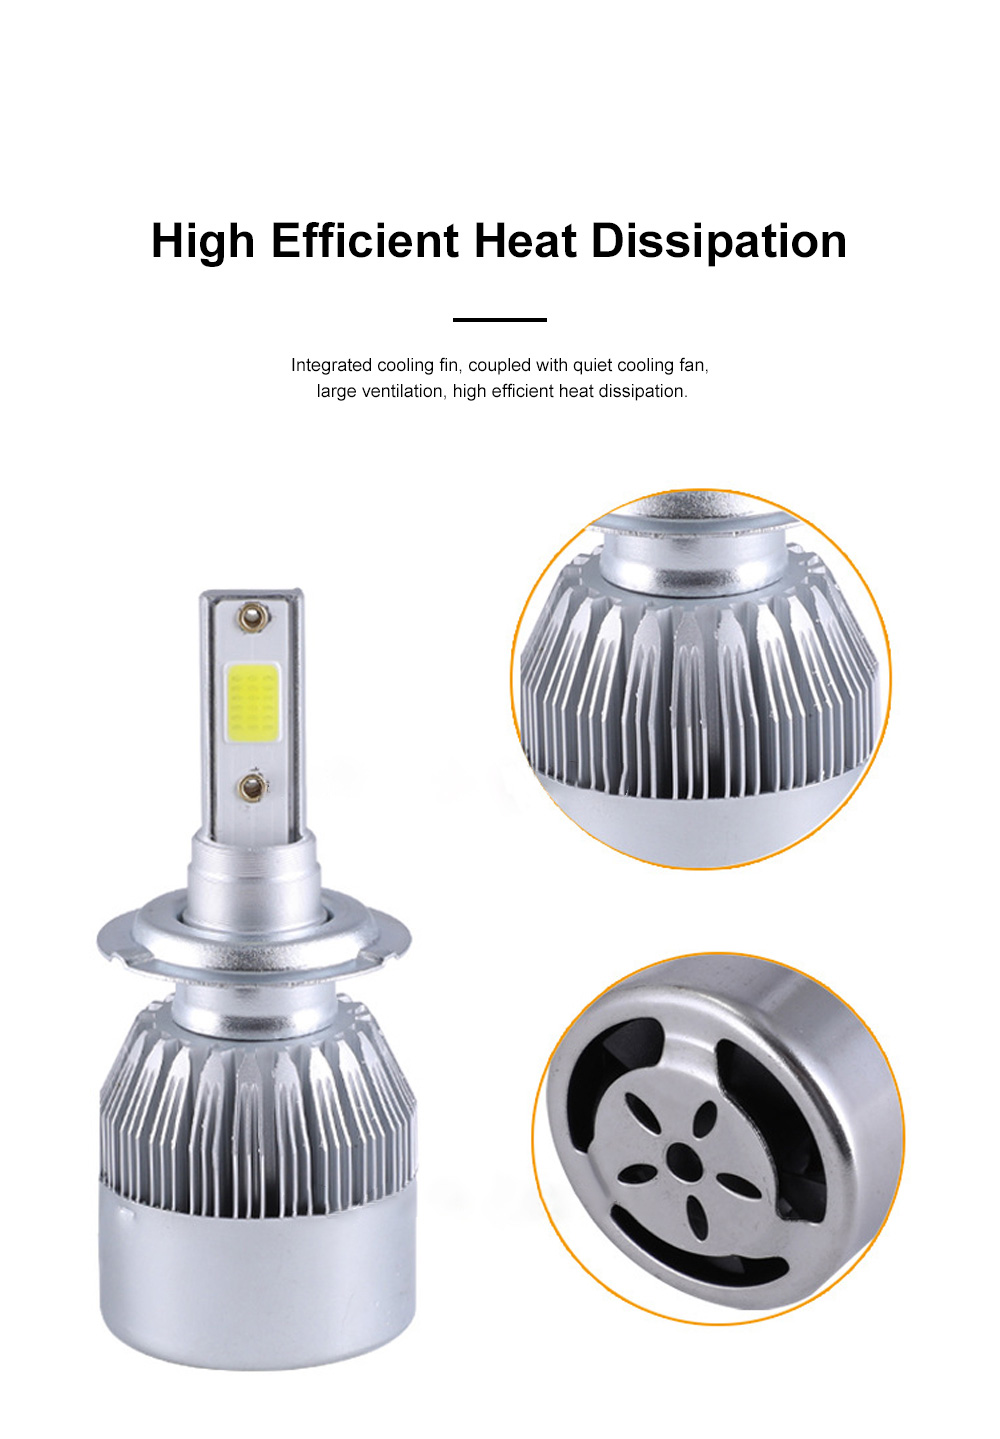 H1 H3 H4 H7 H11 360°Rotatable Car Front Light Brightness LED Interior with Cooling Fin and Quiet Cooling Fan Fit for All Types Vehicles 4